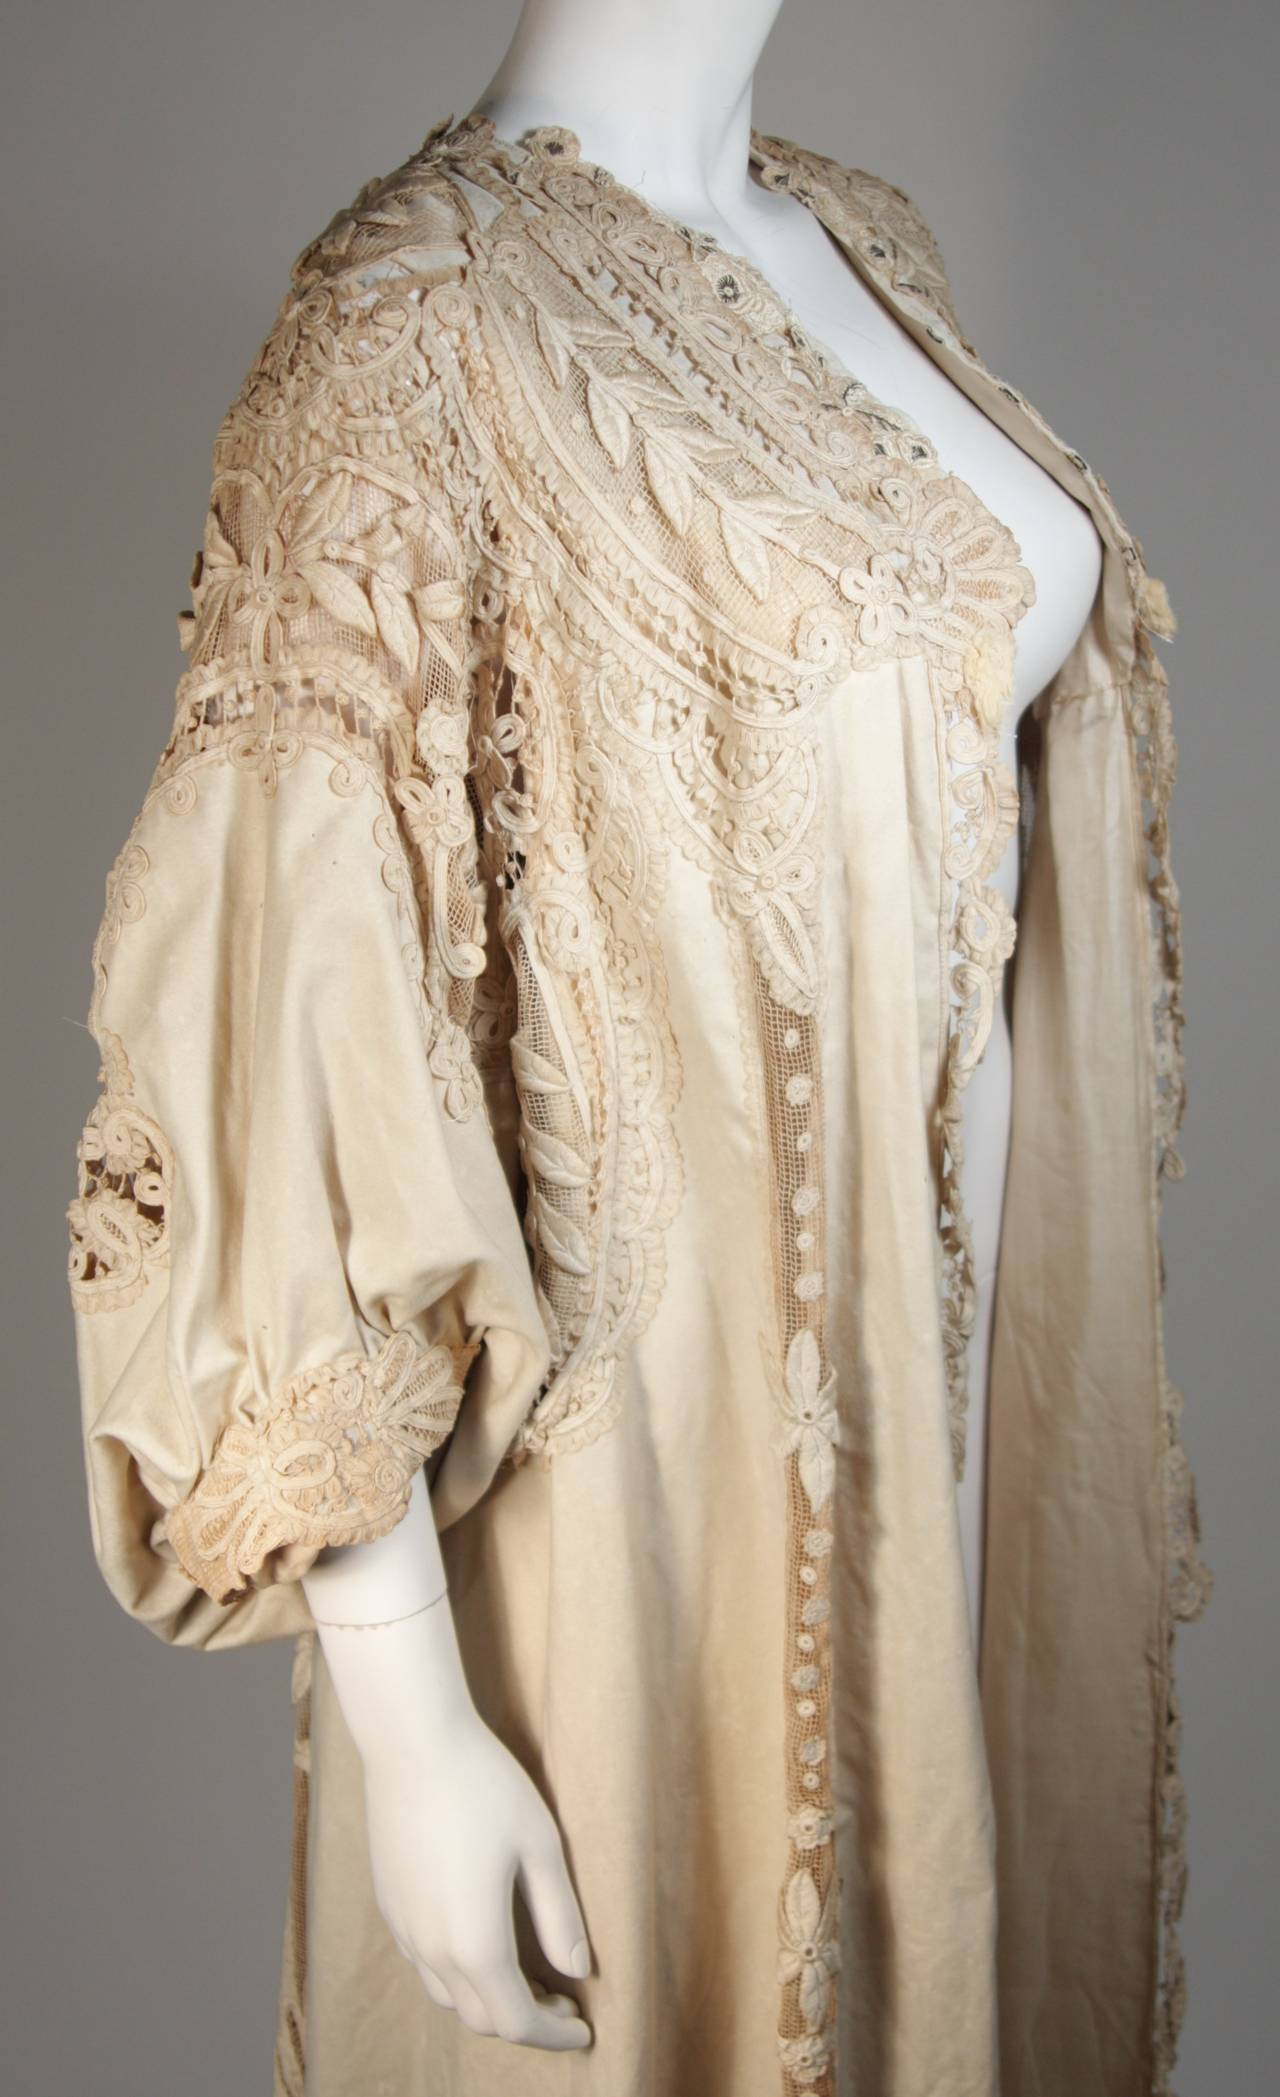 Antique Lace Coat with Bell Sleeve Detail For Sale 4